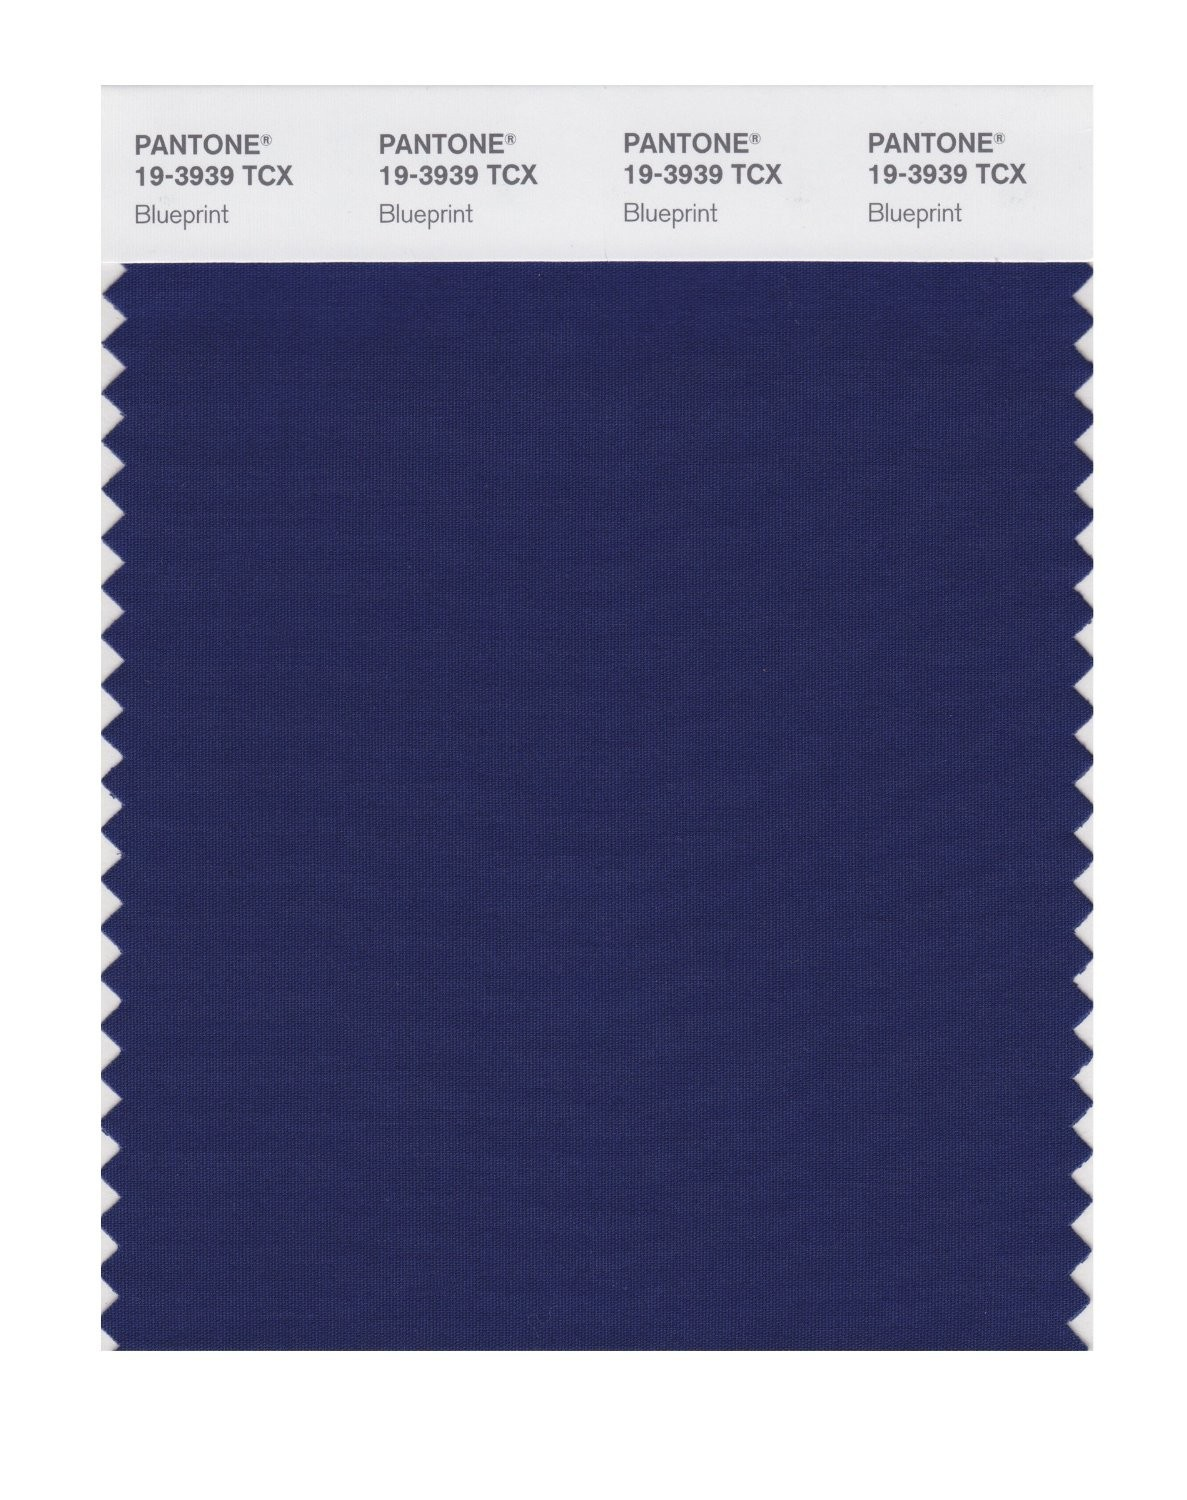 Pantone 19-3939 TCX Swatch Card Blue Print